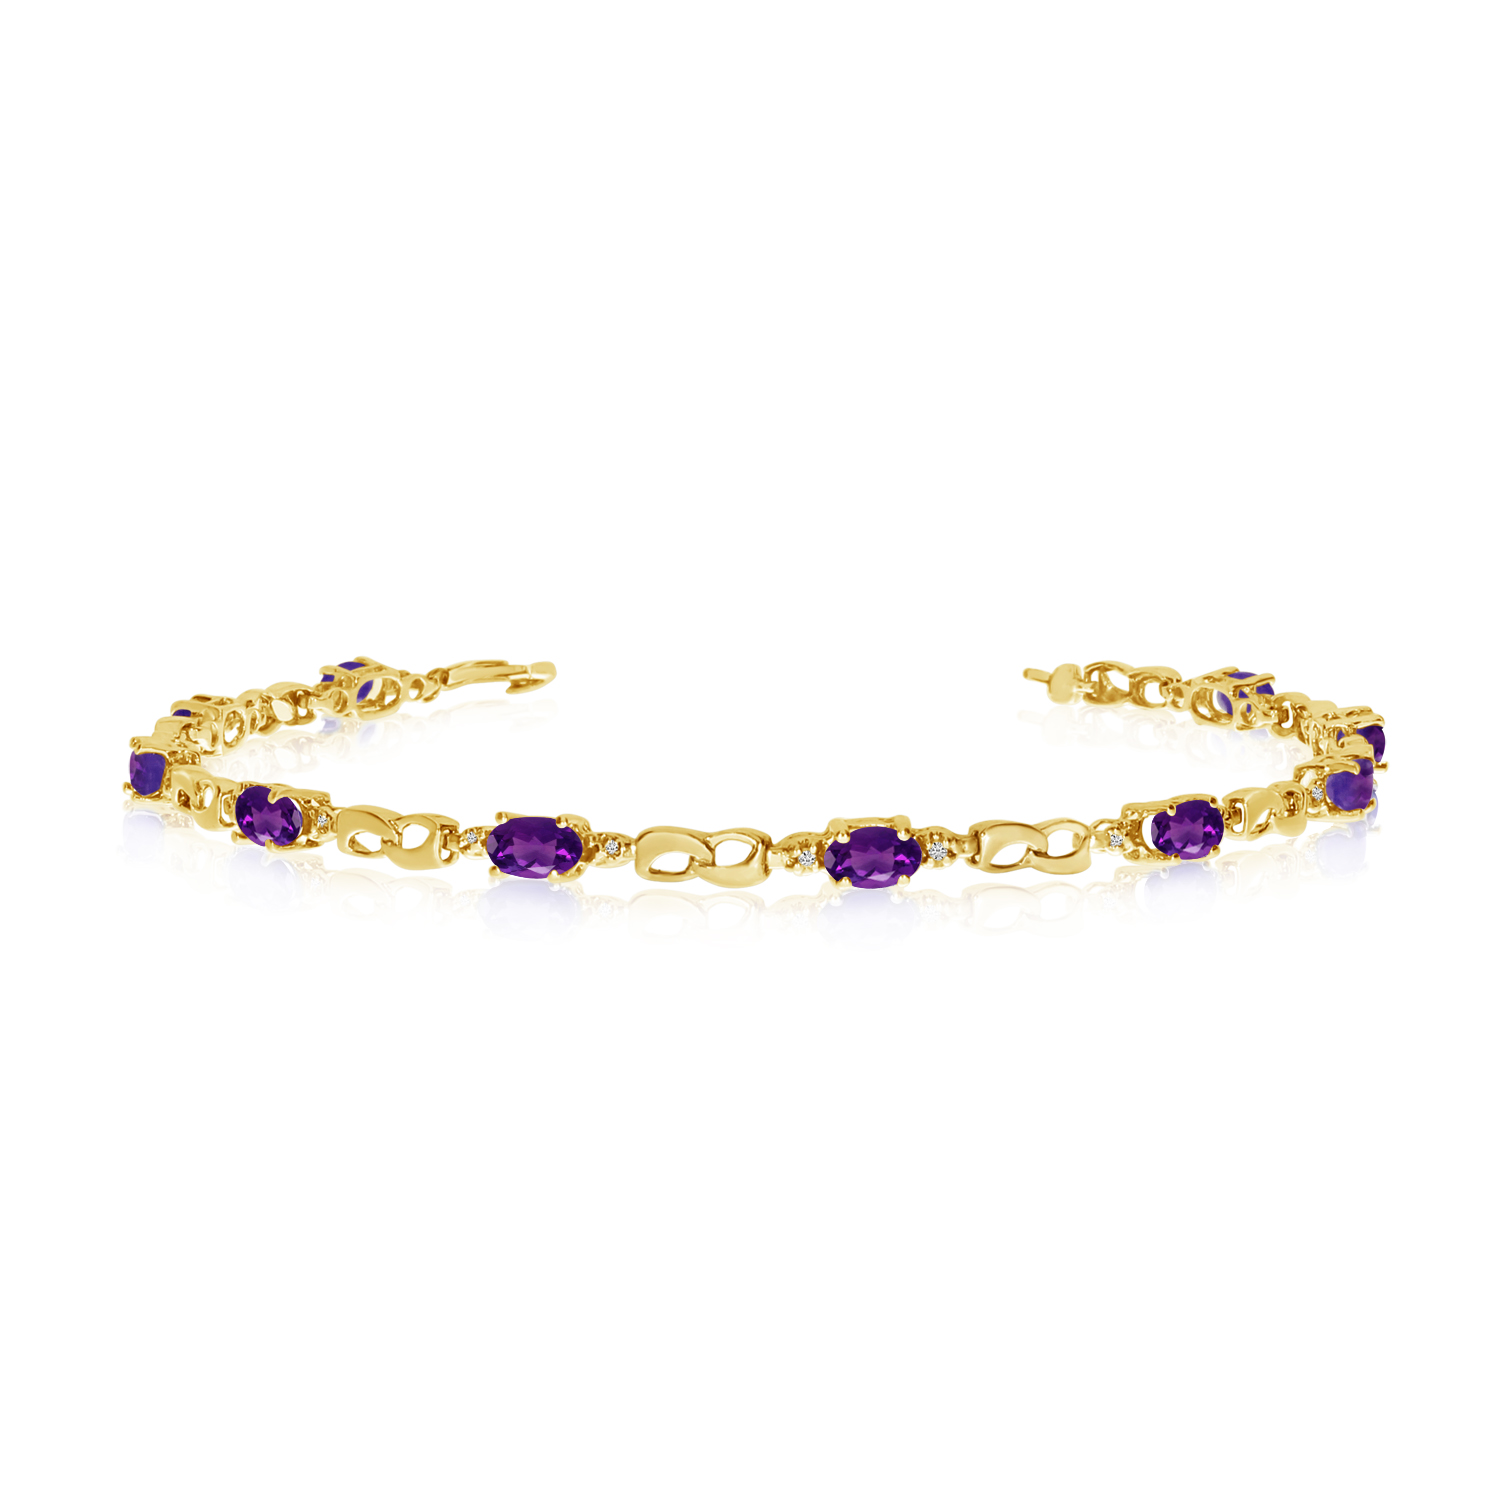 14K Yellow Gold Oval Amethyst and Diamond Link Bracelet by